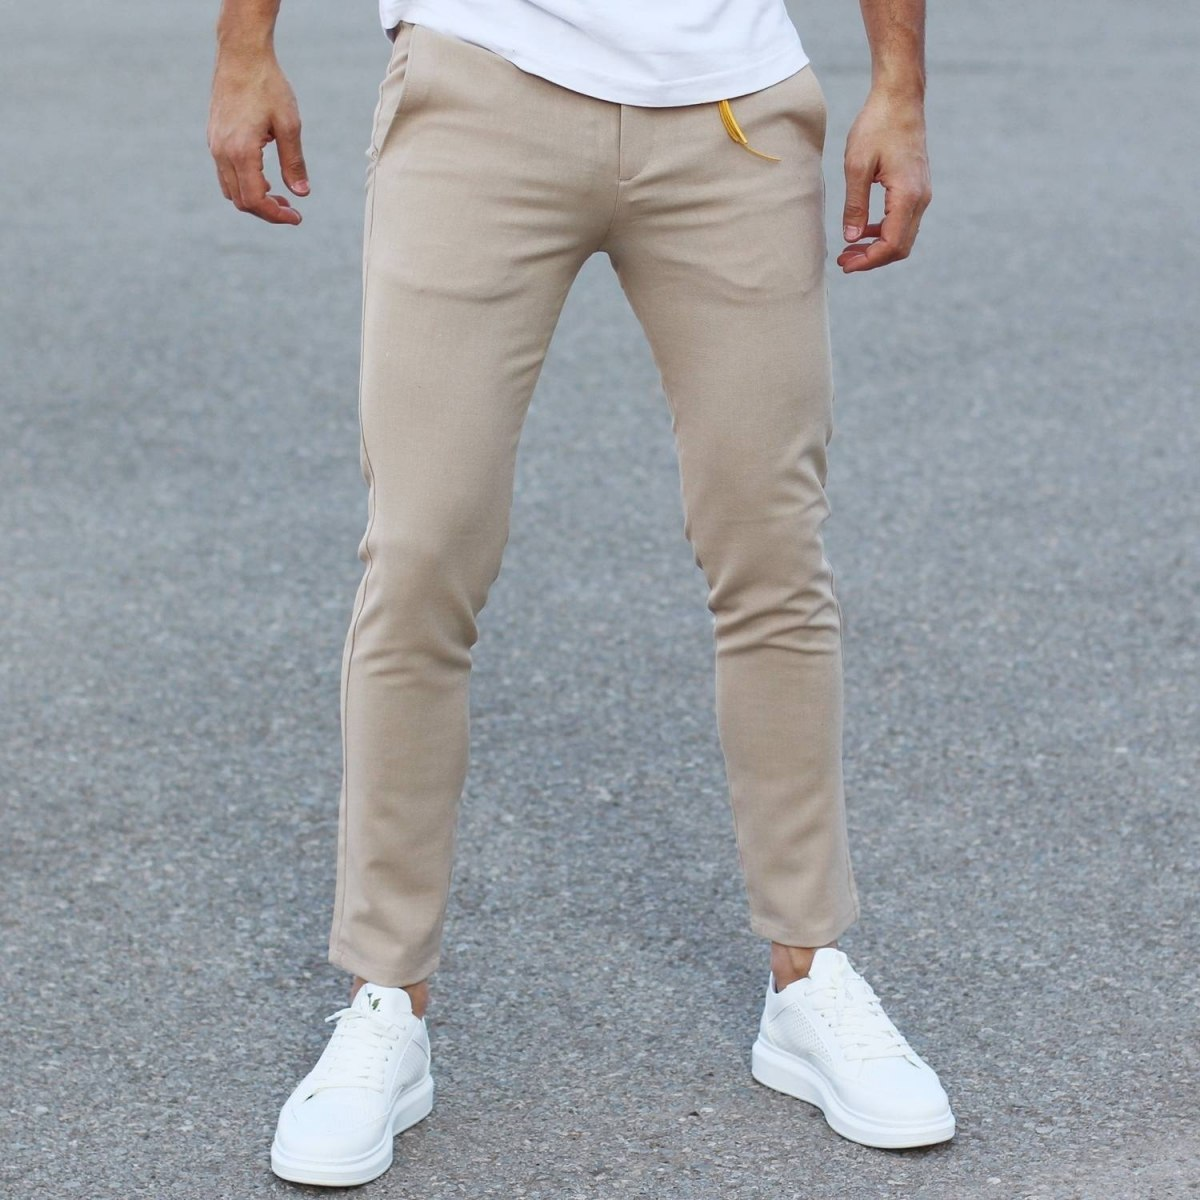 Comfort Smart-Wear Pants in Beige Mv Premium Brand - 3